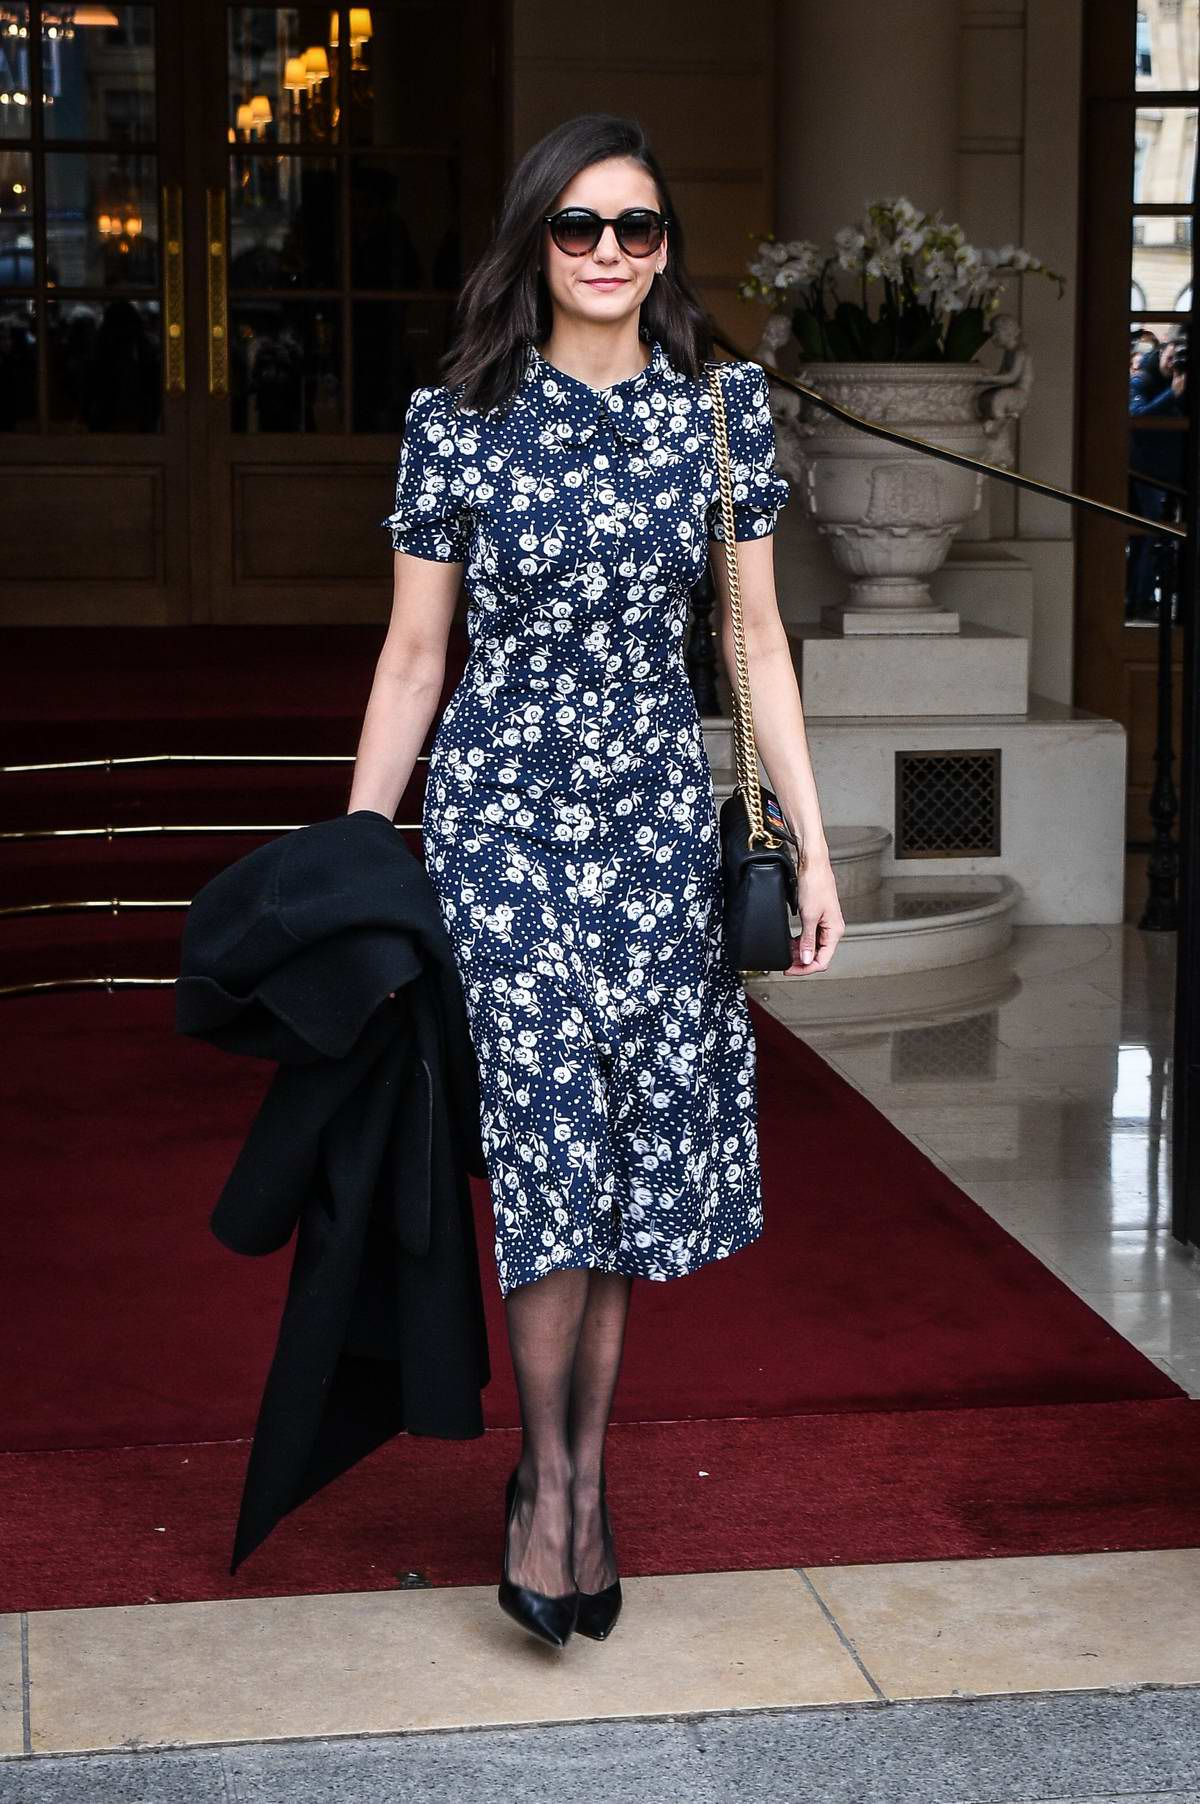 e2c9475d43 Nina Dobrev steps out in a navy blue floral print dress during Paris  Fashion Week F W 2019 in Paris